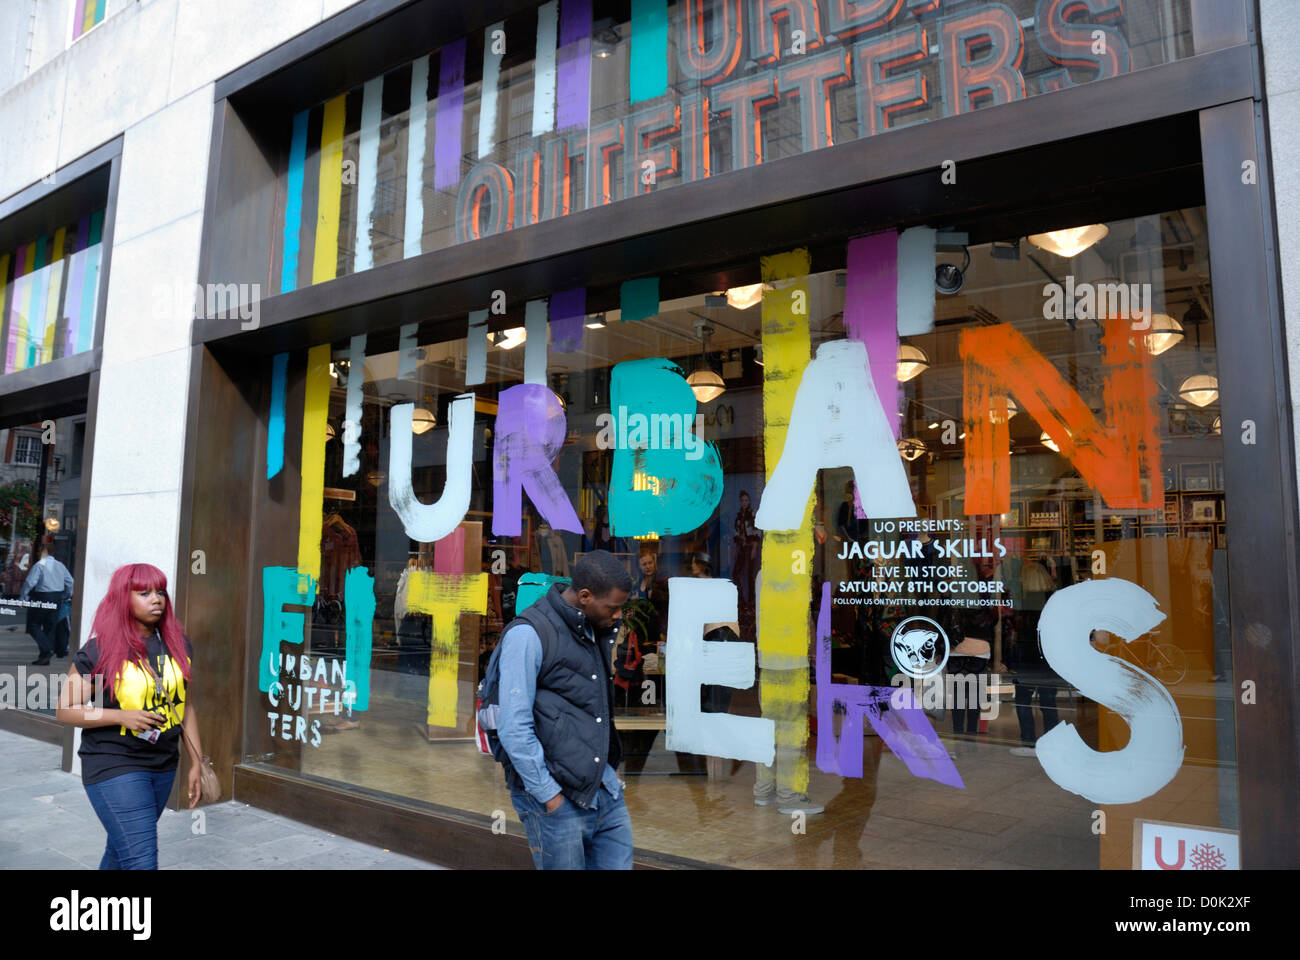 Exterior Of An Urban Outfitters Fashion Shop Stock Photo